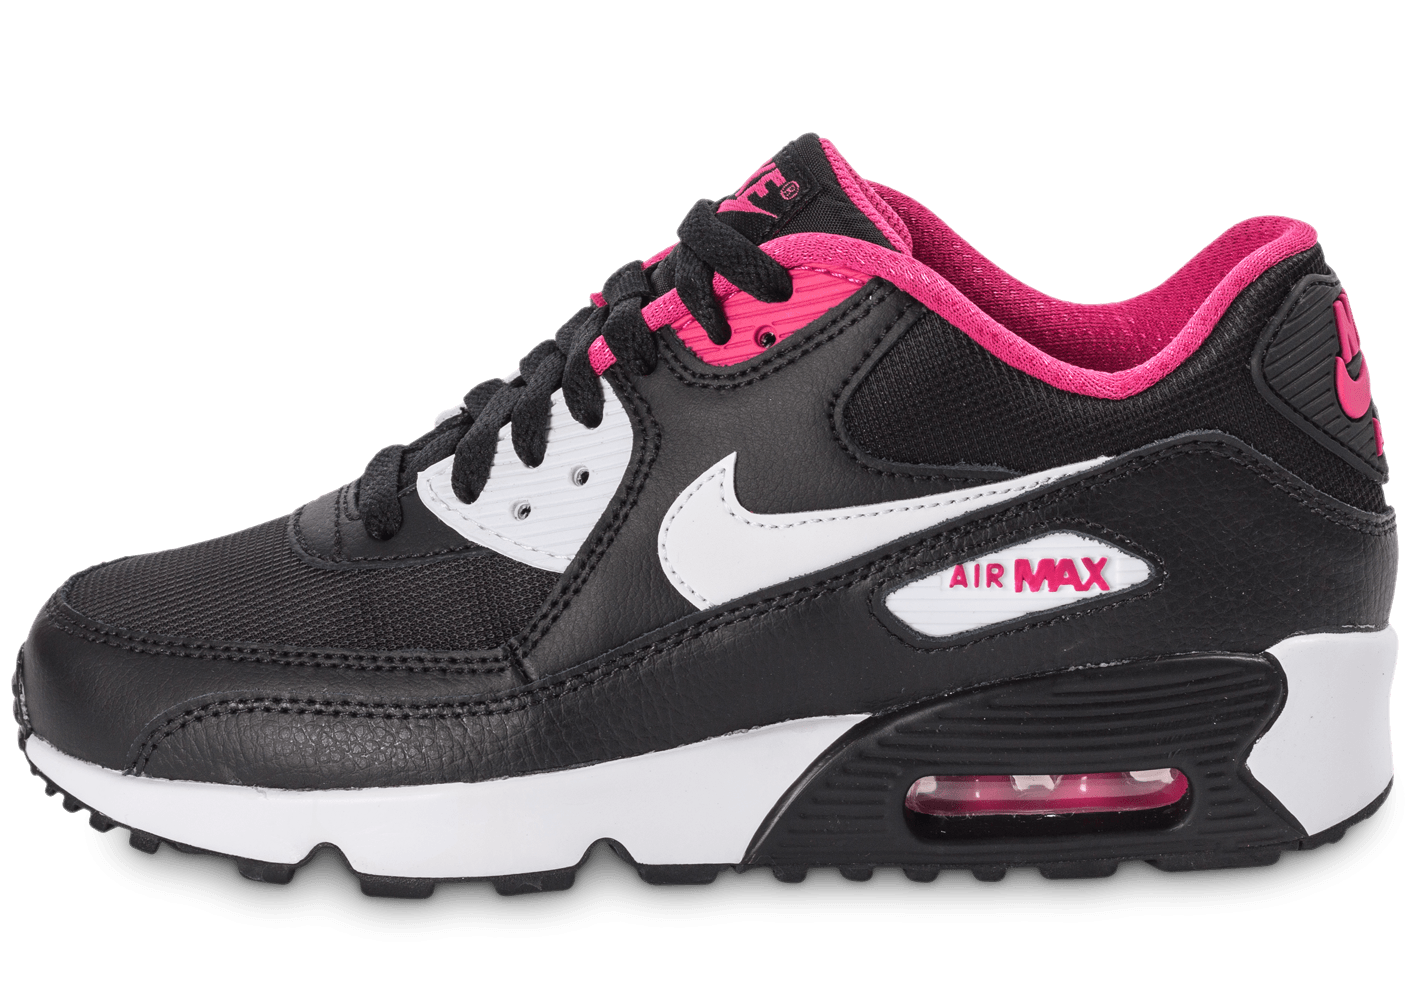 save off 68f96 5f251 Nike Air Max 90 Mesh Junior noir et rose - Chaussures Enfant - Chausport